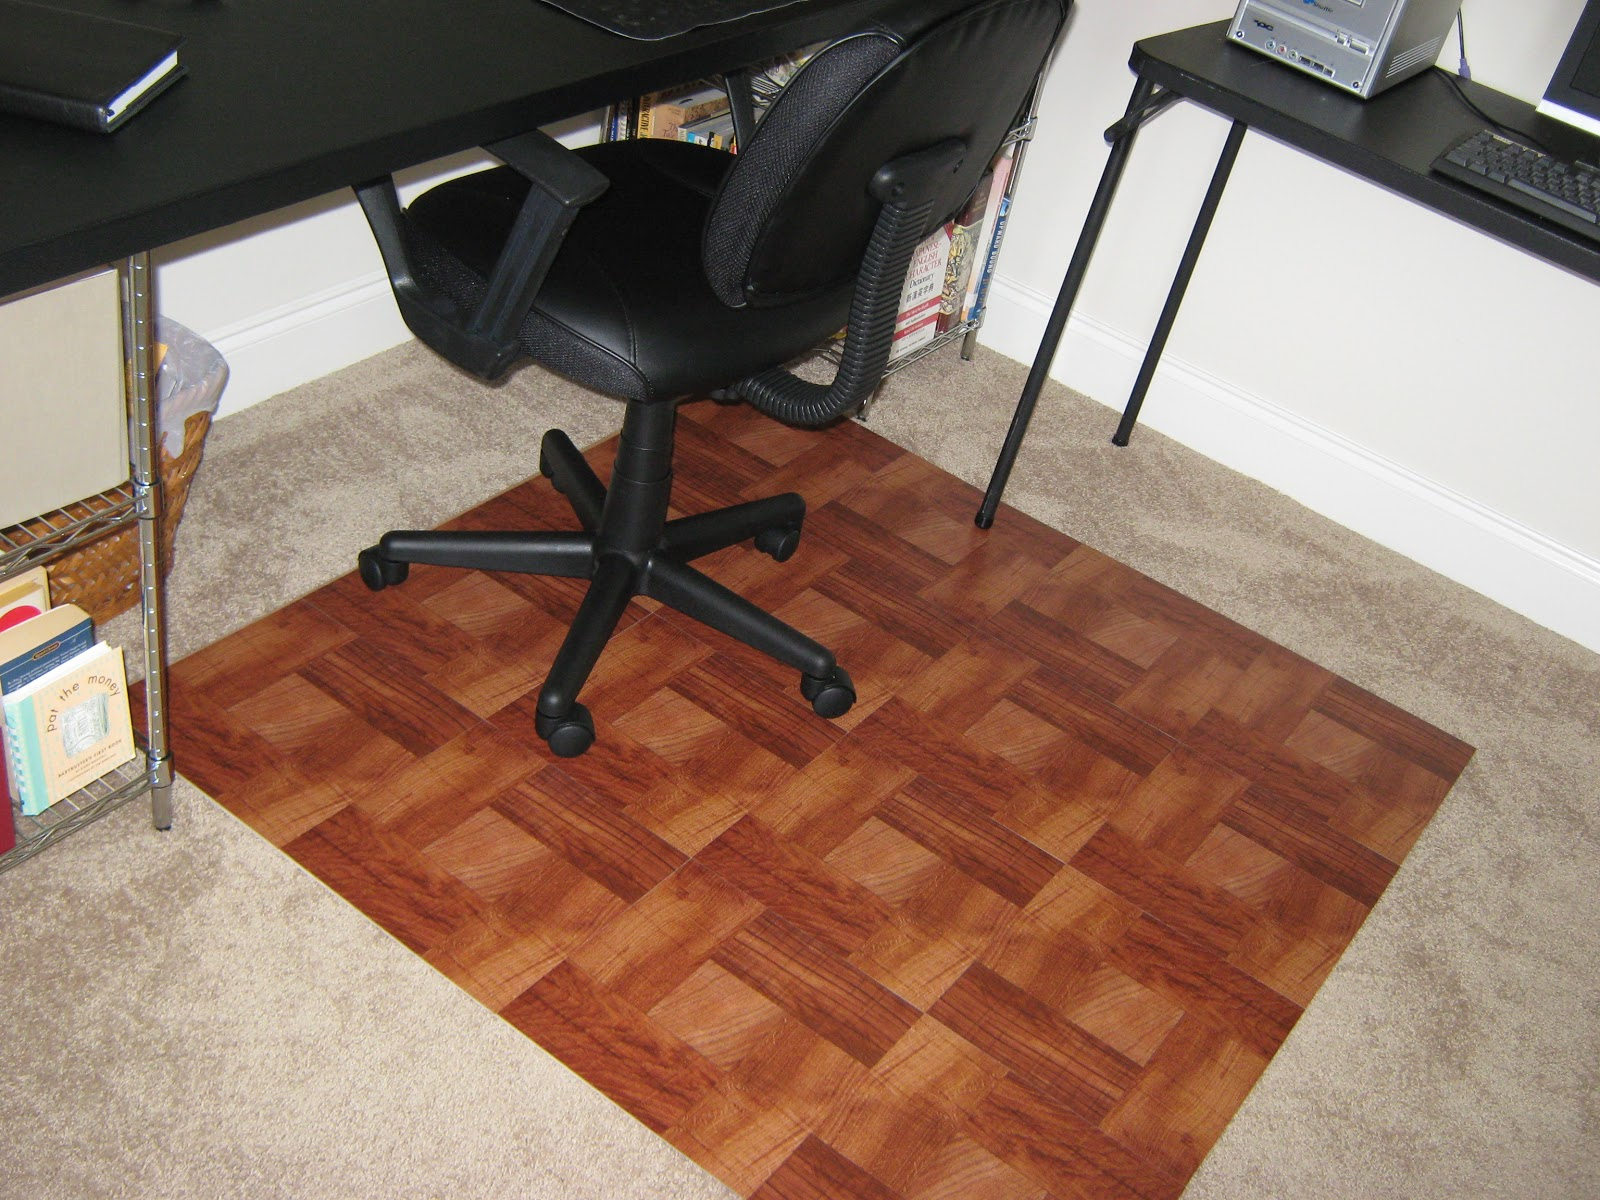 Cool DIY  carpet chair mats for hardwood floors